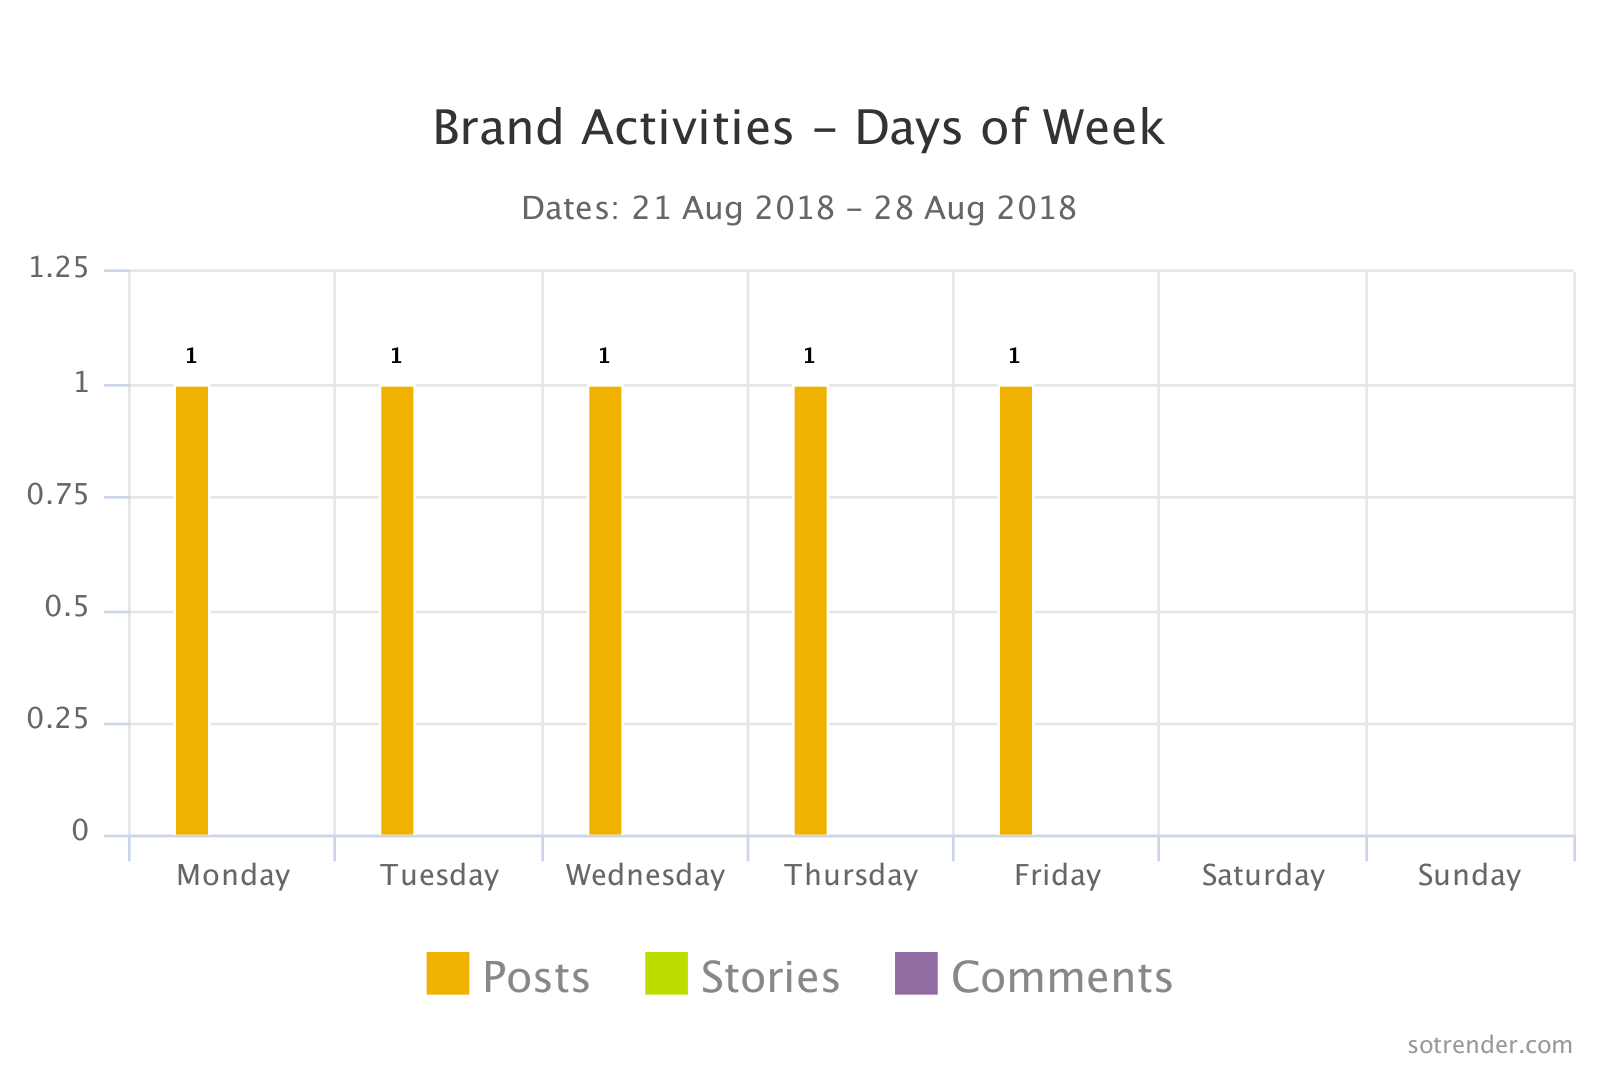 Brand Activities - Days of week